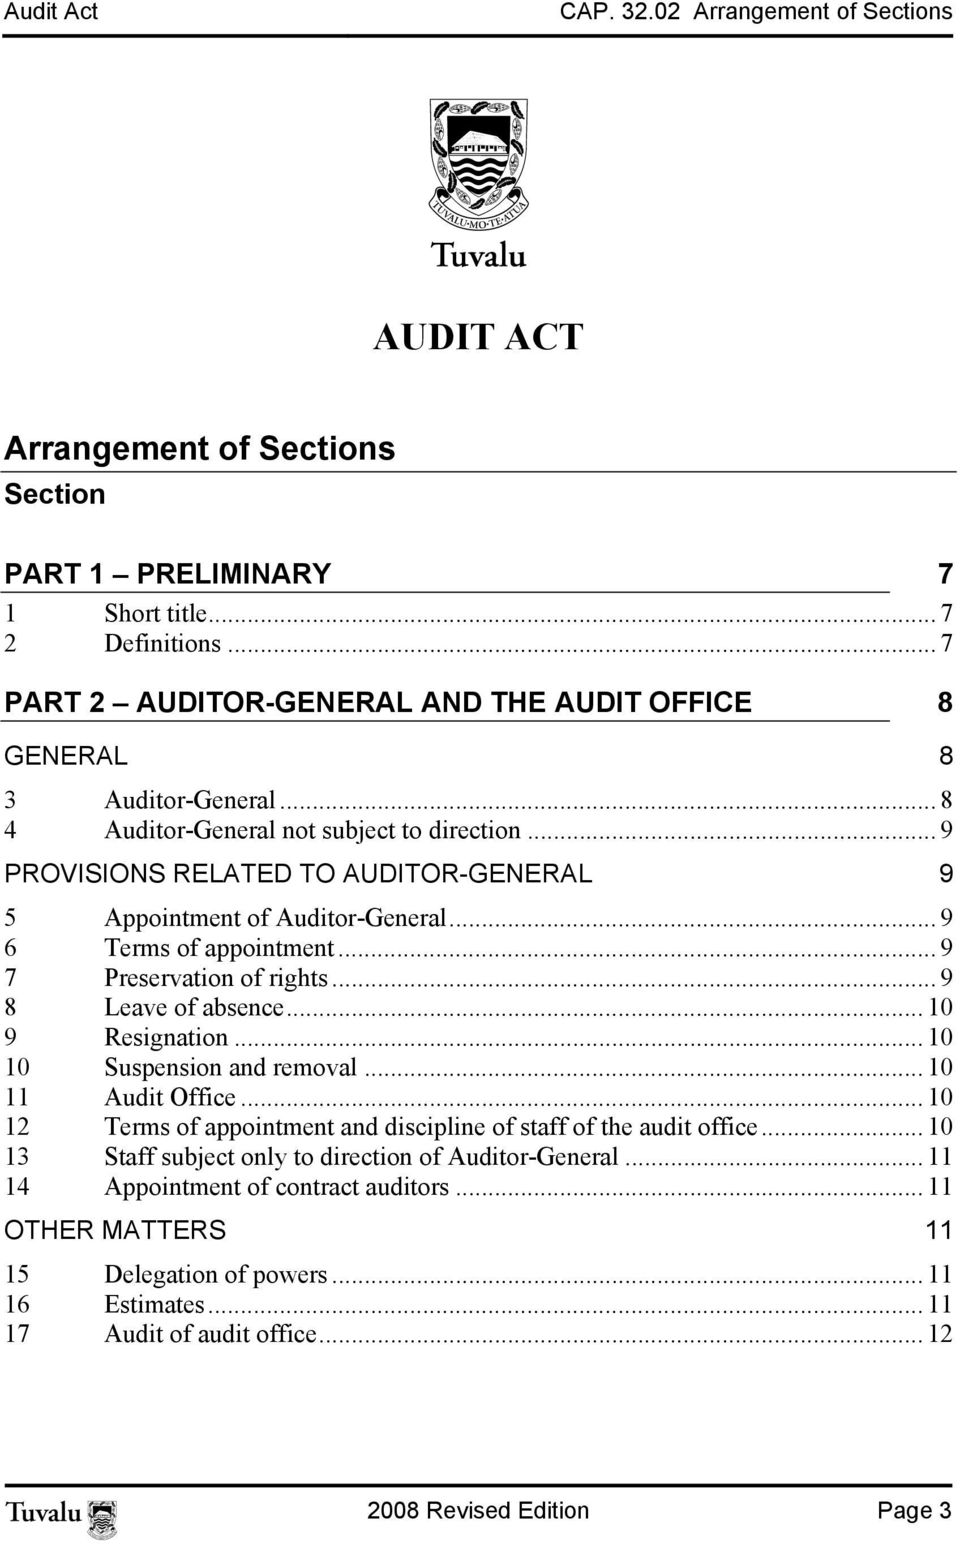 .. 9 PROVISIONS RELATED TO AUDITOR-GENERAL 9 5 Appointment of Auditor-General... 9 6 Terms of appointment... 9 7 Preservation of rights... 9 8 Leave of absence... 10 9 Resignation.